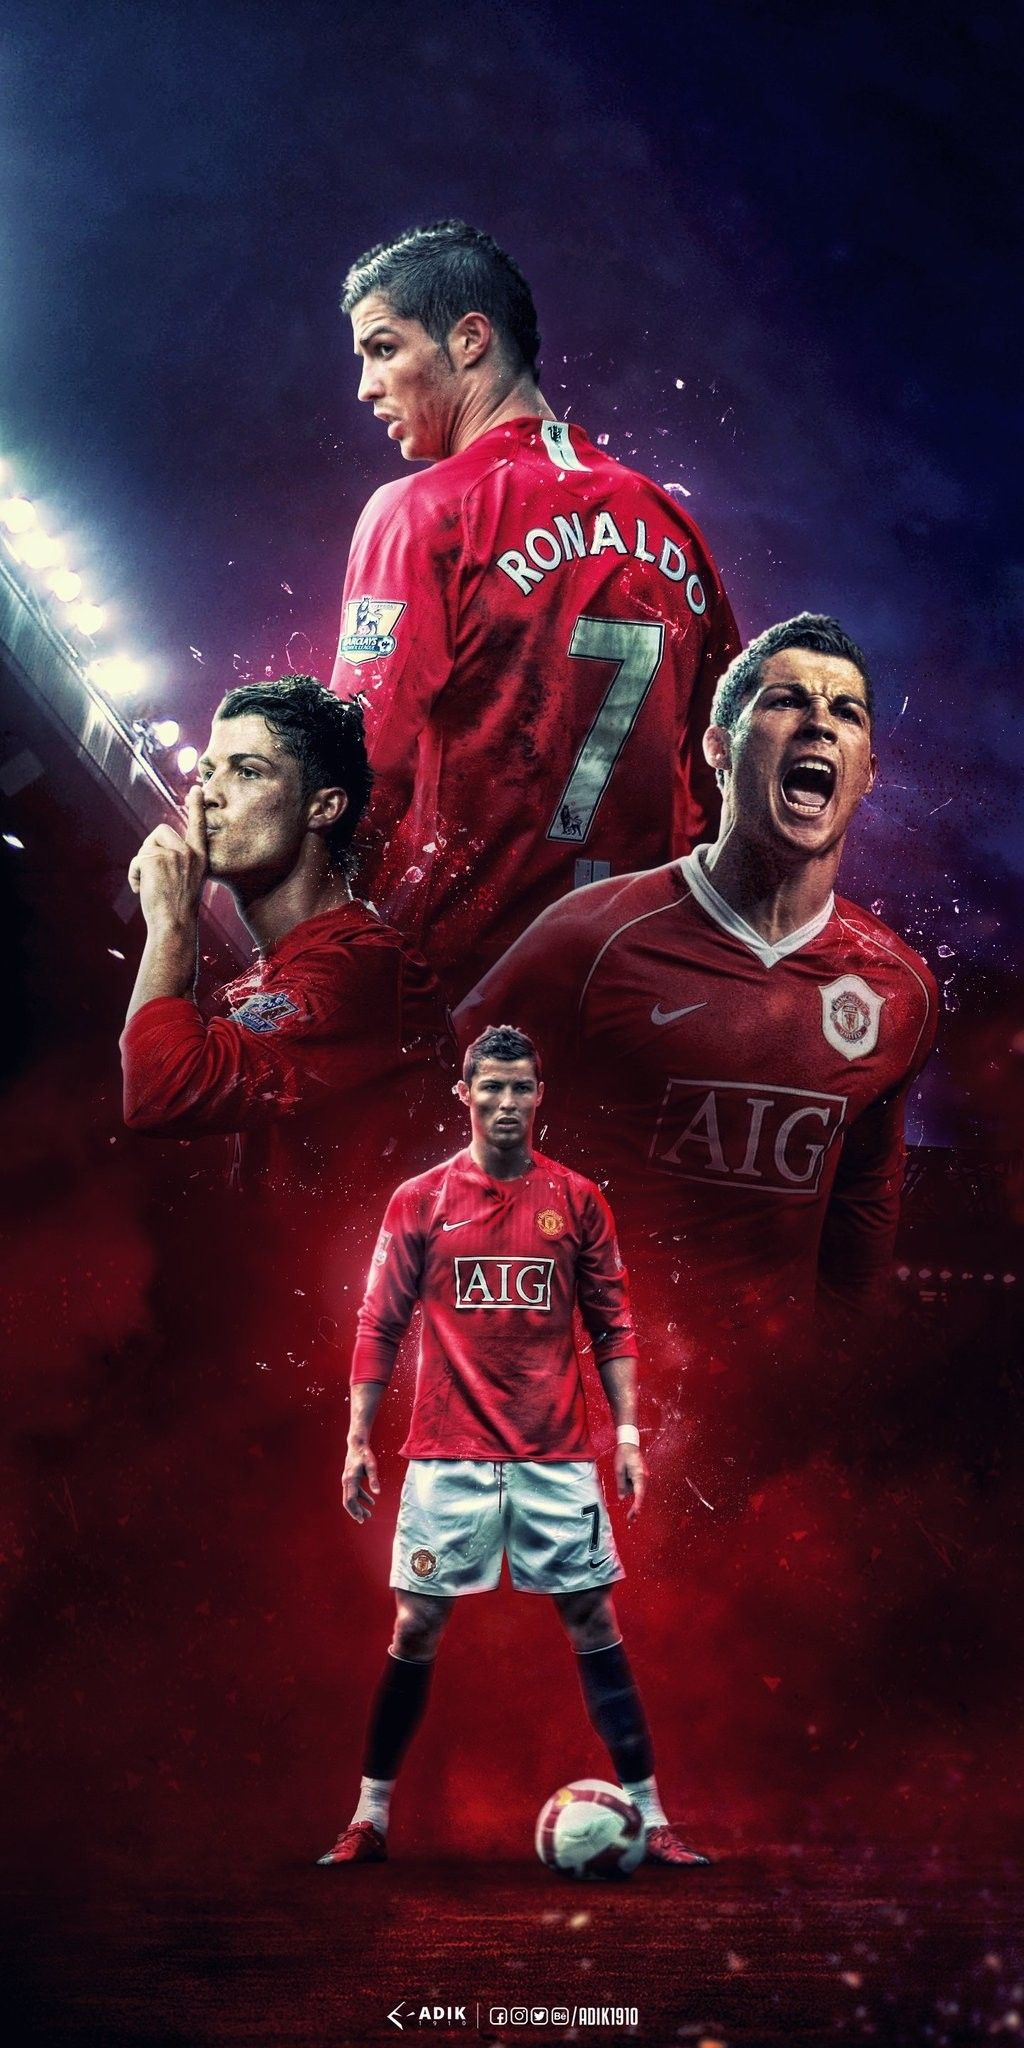 Ronaldo Wallpapers Photography Cristiano Ronaldo Celebrity Wallpaper In 2020 Cristiano Ronaldo Manchester Manchester United Team Manchester United Ronaldo